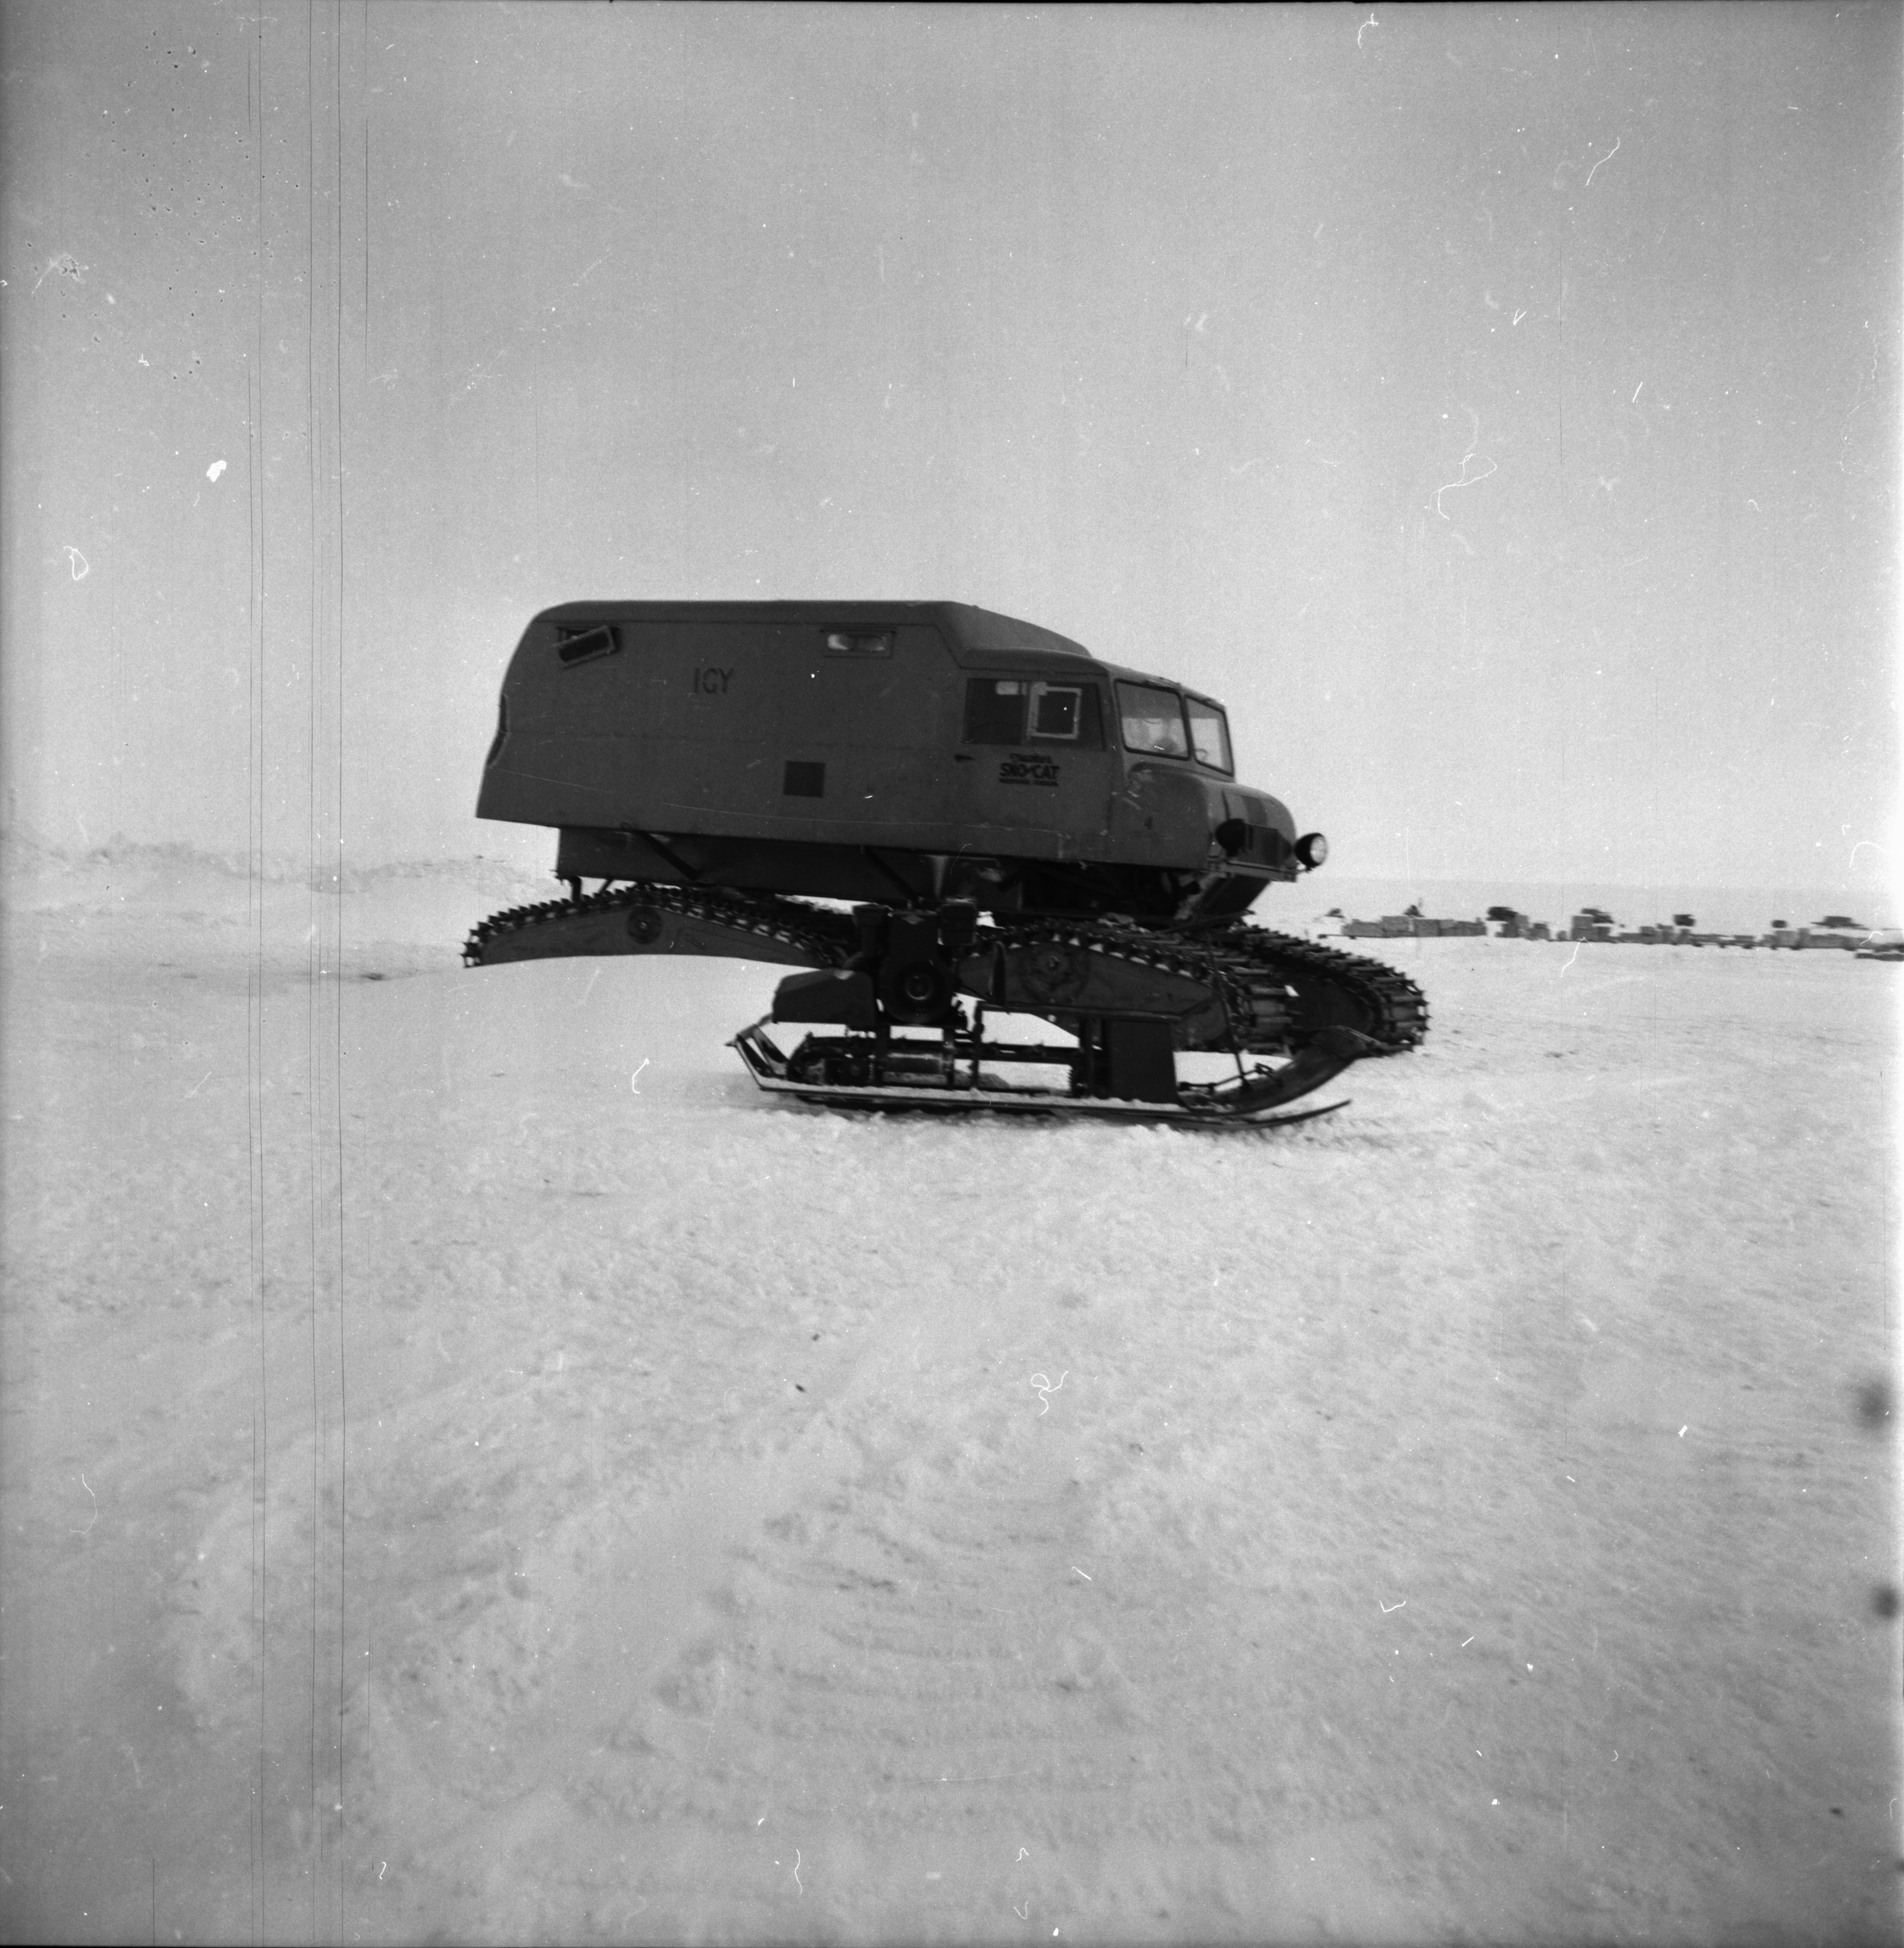 Transport Equipment, U-M Research Trip to Antarctica, November 1962 image